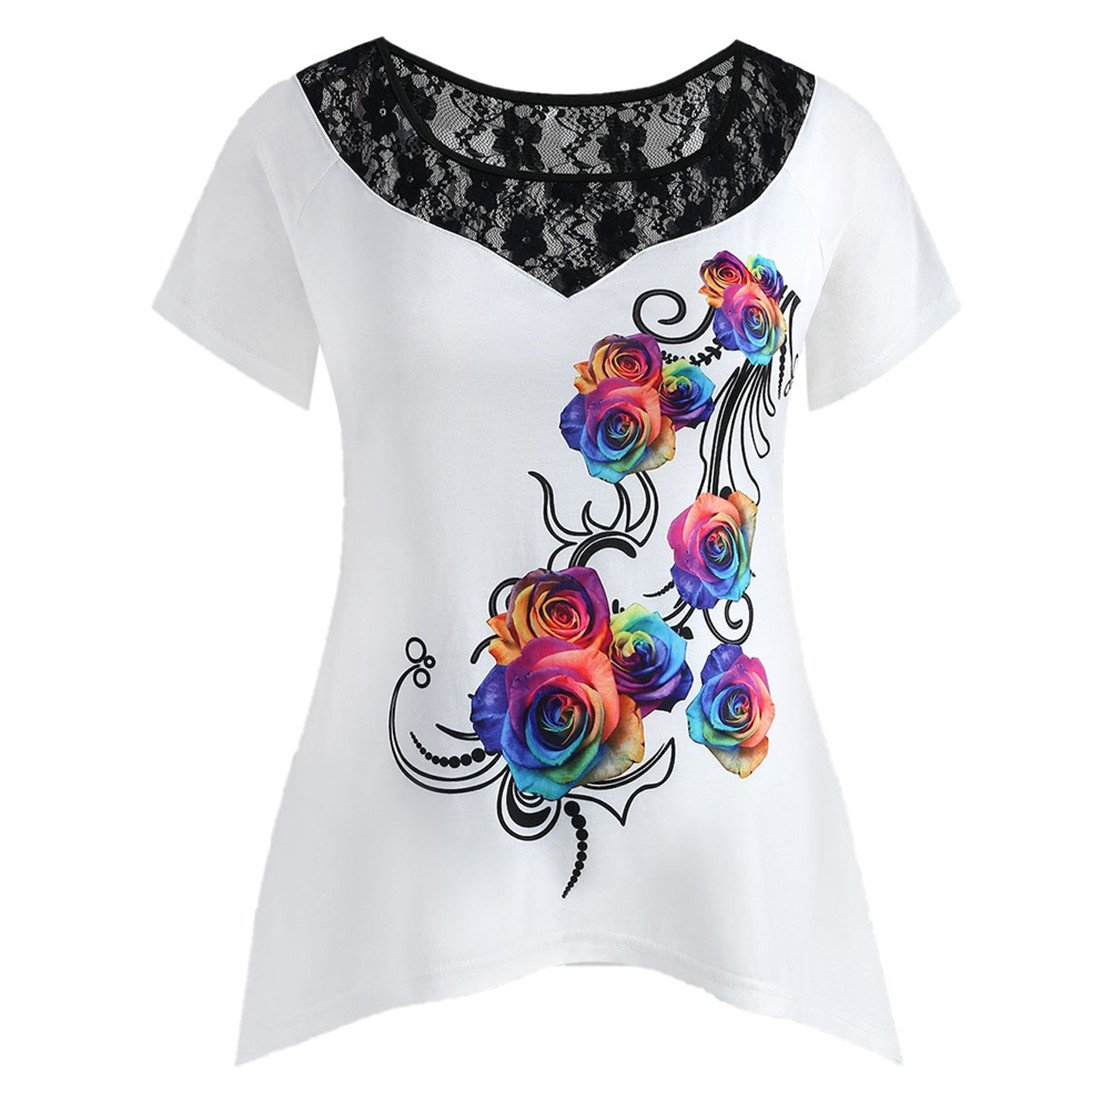 ZHANGVIP Womens Plus Size Floral Printed Colorful Rose Lace Short Sleeve Round Neck Tee T-Shirt Tops (XL, White)